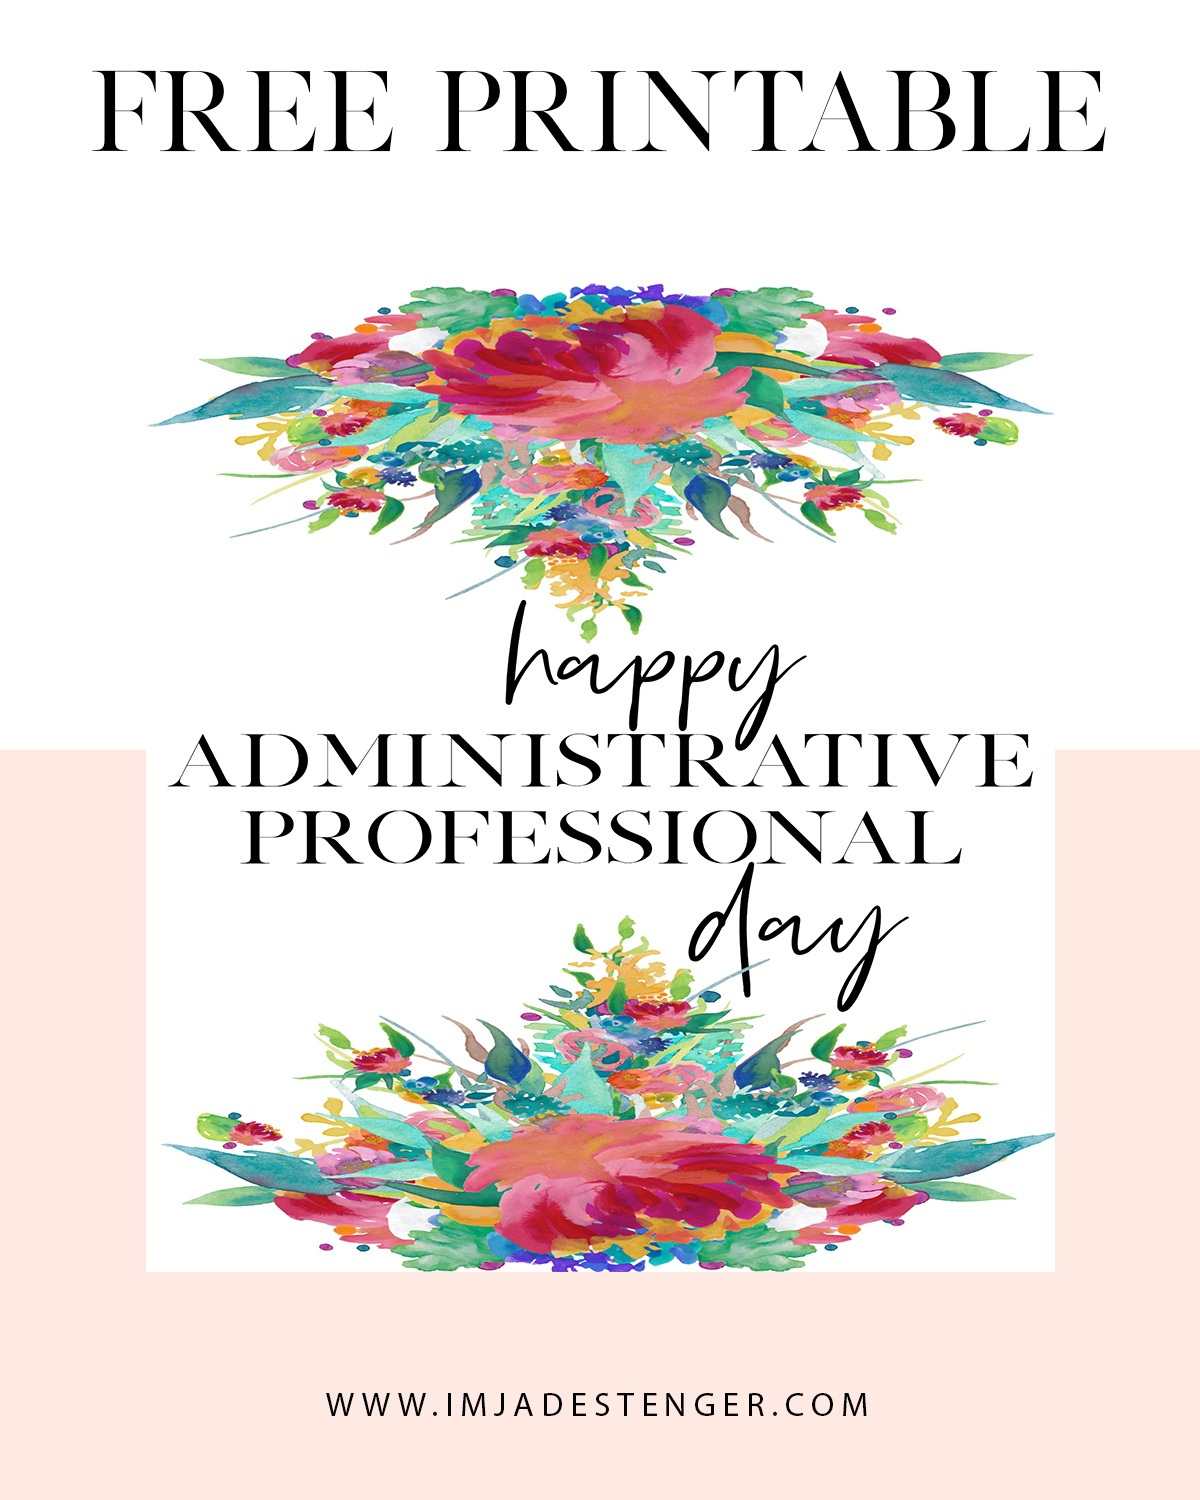 Free Printable: Celebrating Administrative Professional Day | I'm - Administrative Professionals Cards Printable Free